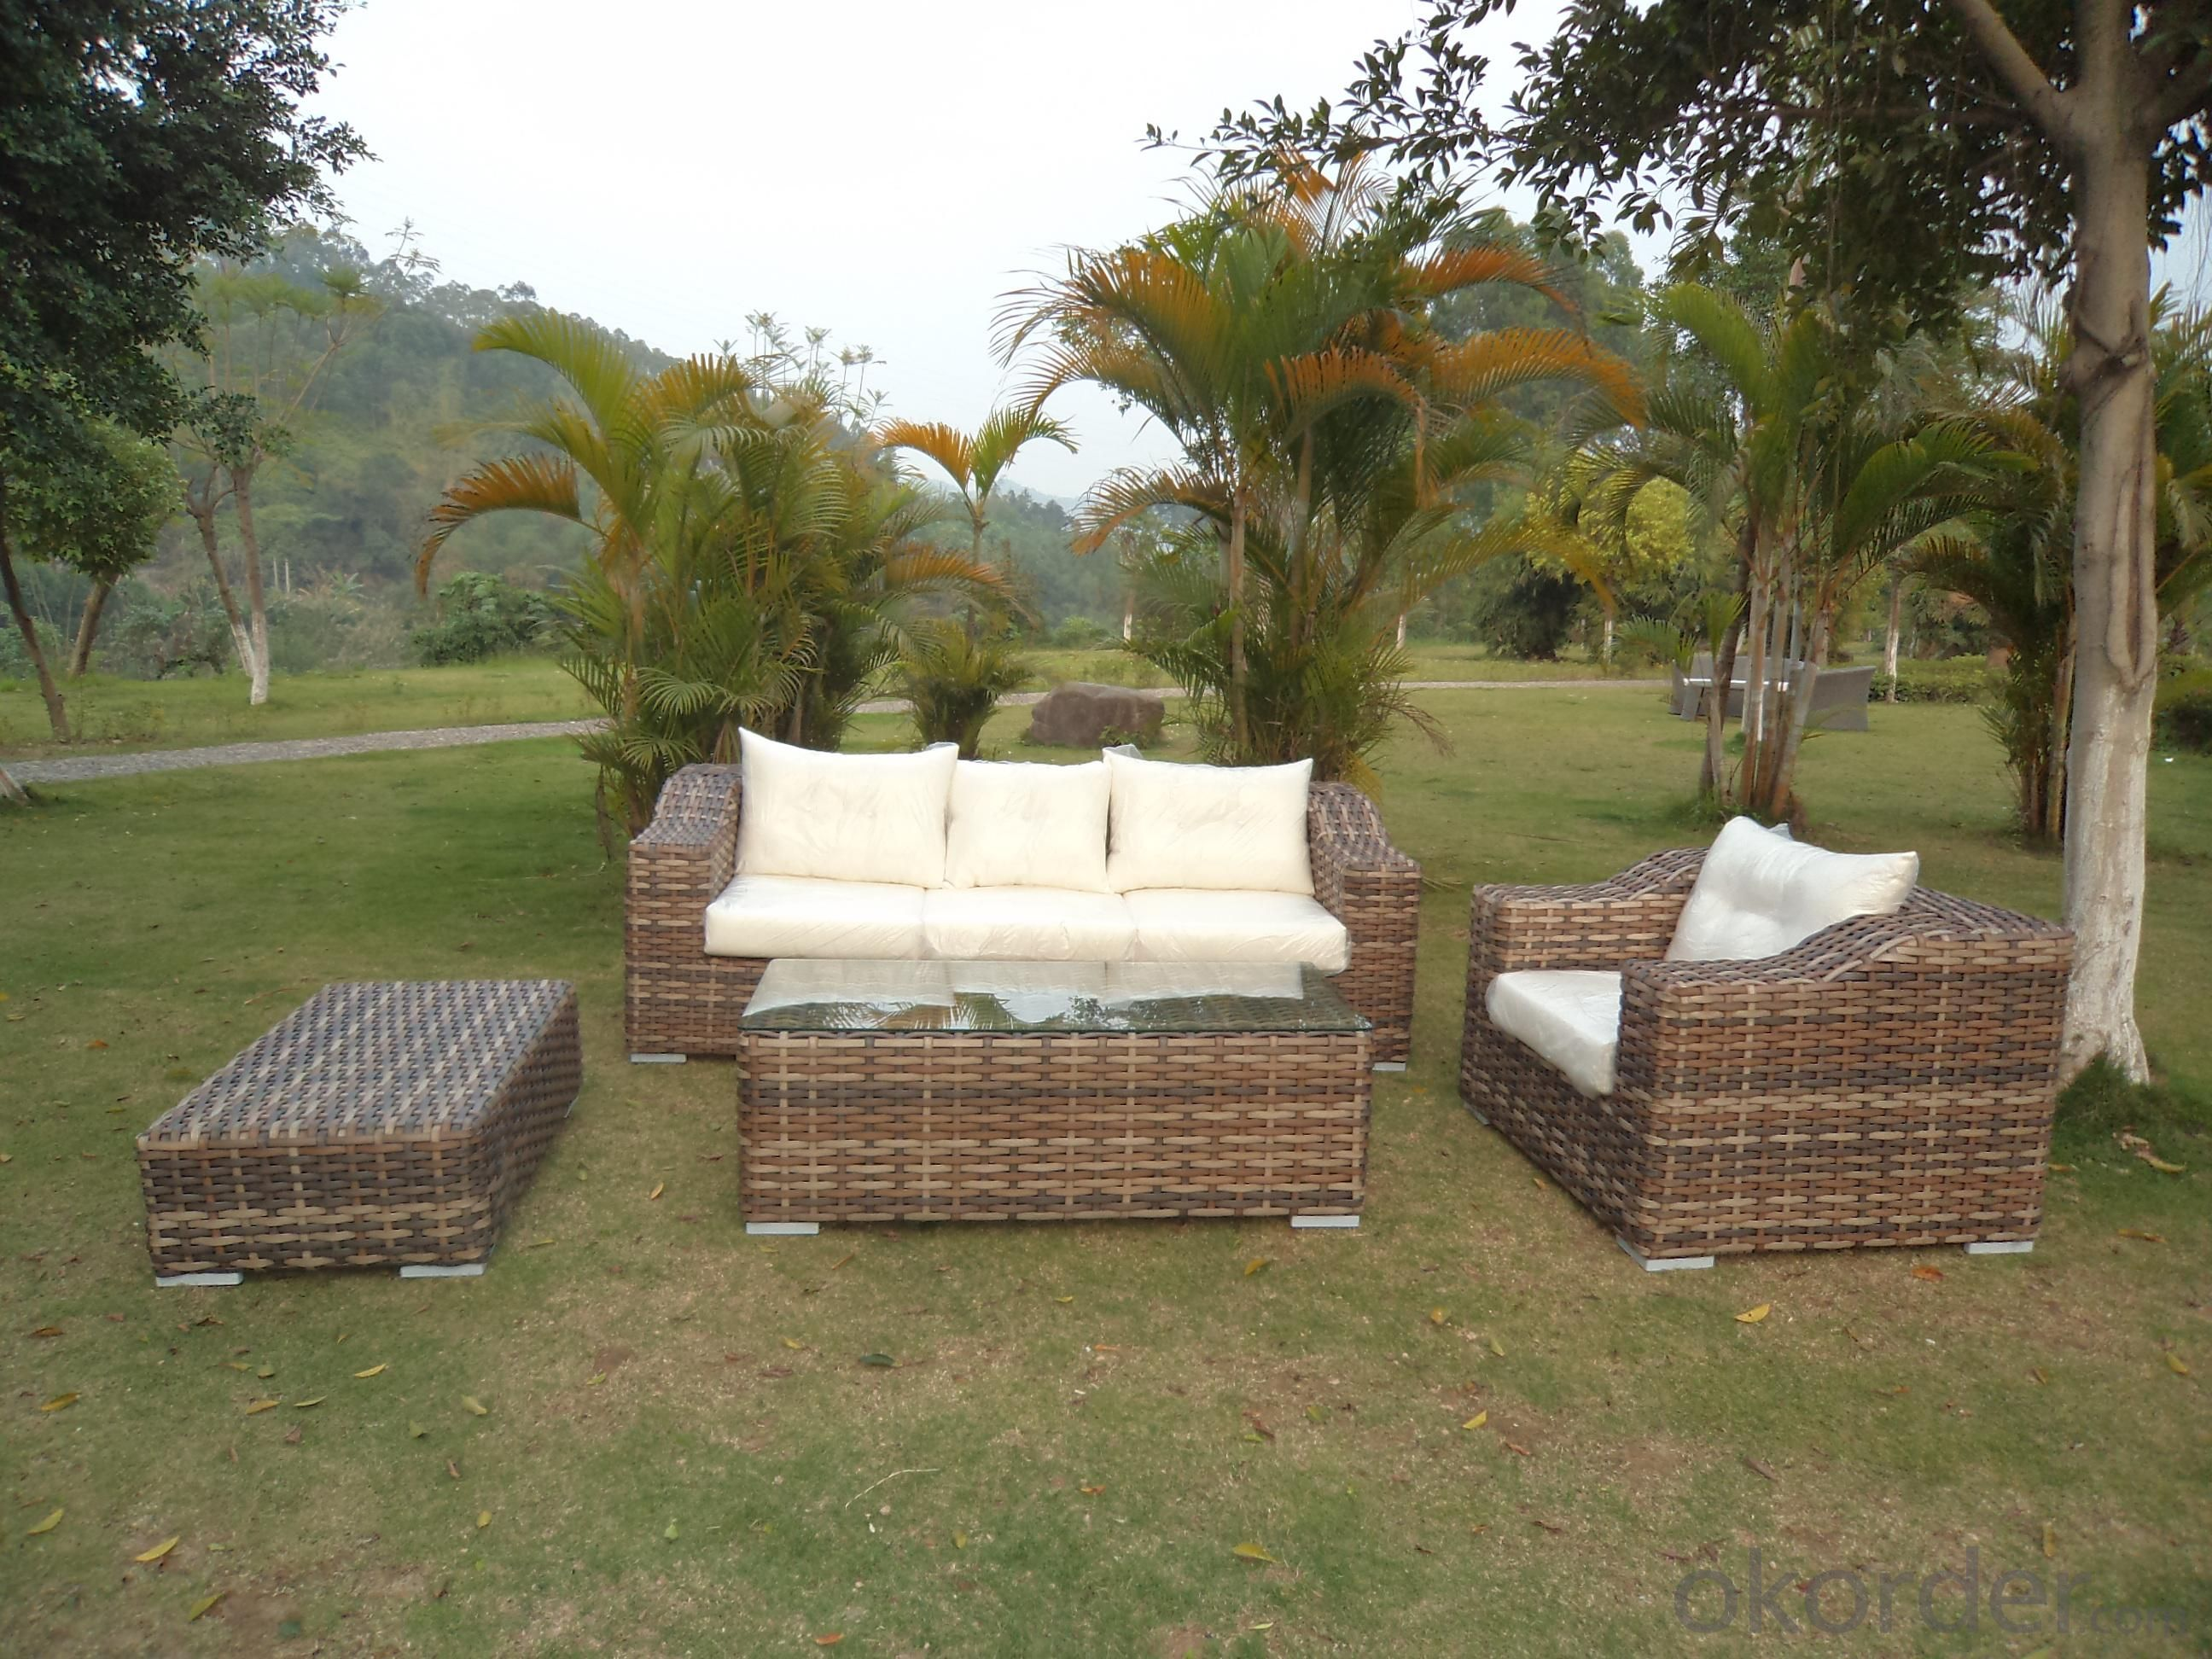 Rattan Iron Shelves Outdoor Garden Furniture One Single Sofa One Long Sofa One ottoman And A Tea Table